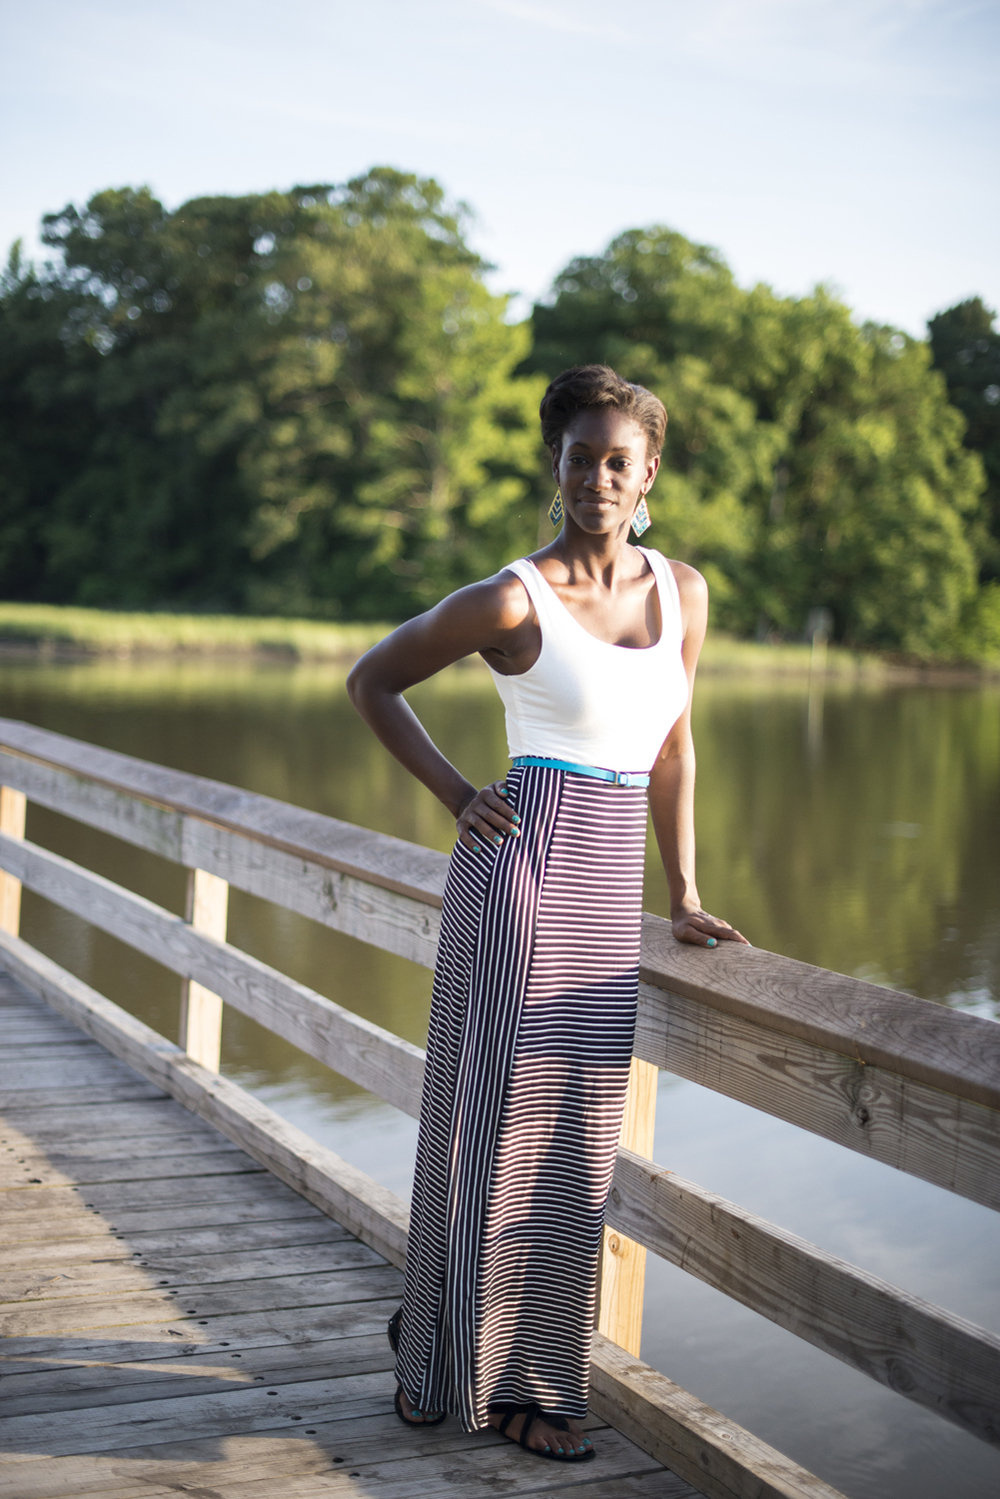 Model headshot by the water at sunset in Suffolk, Virginia